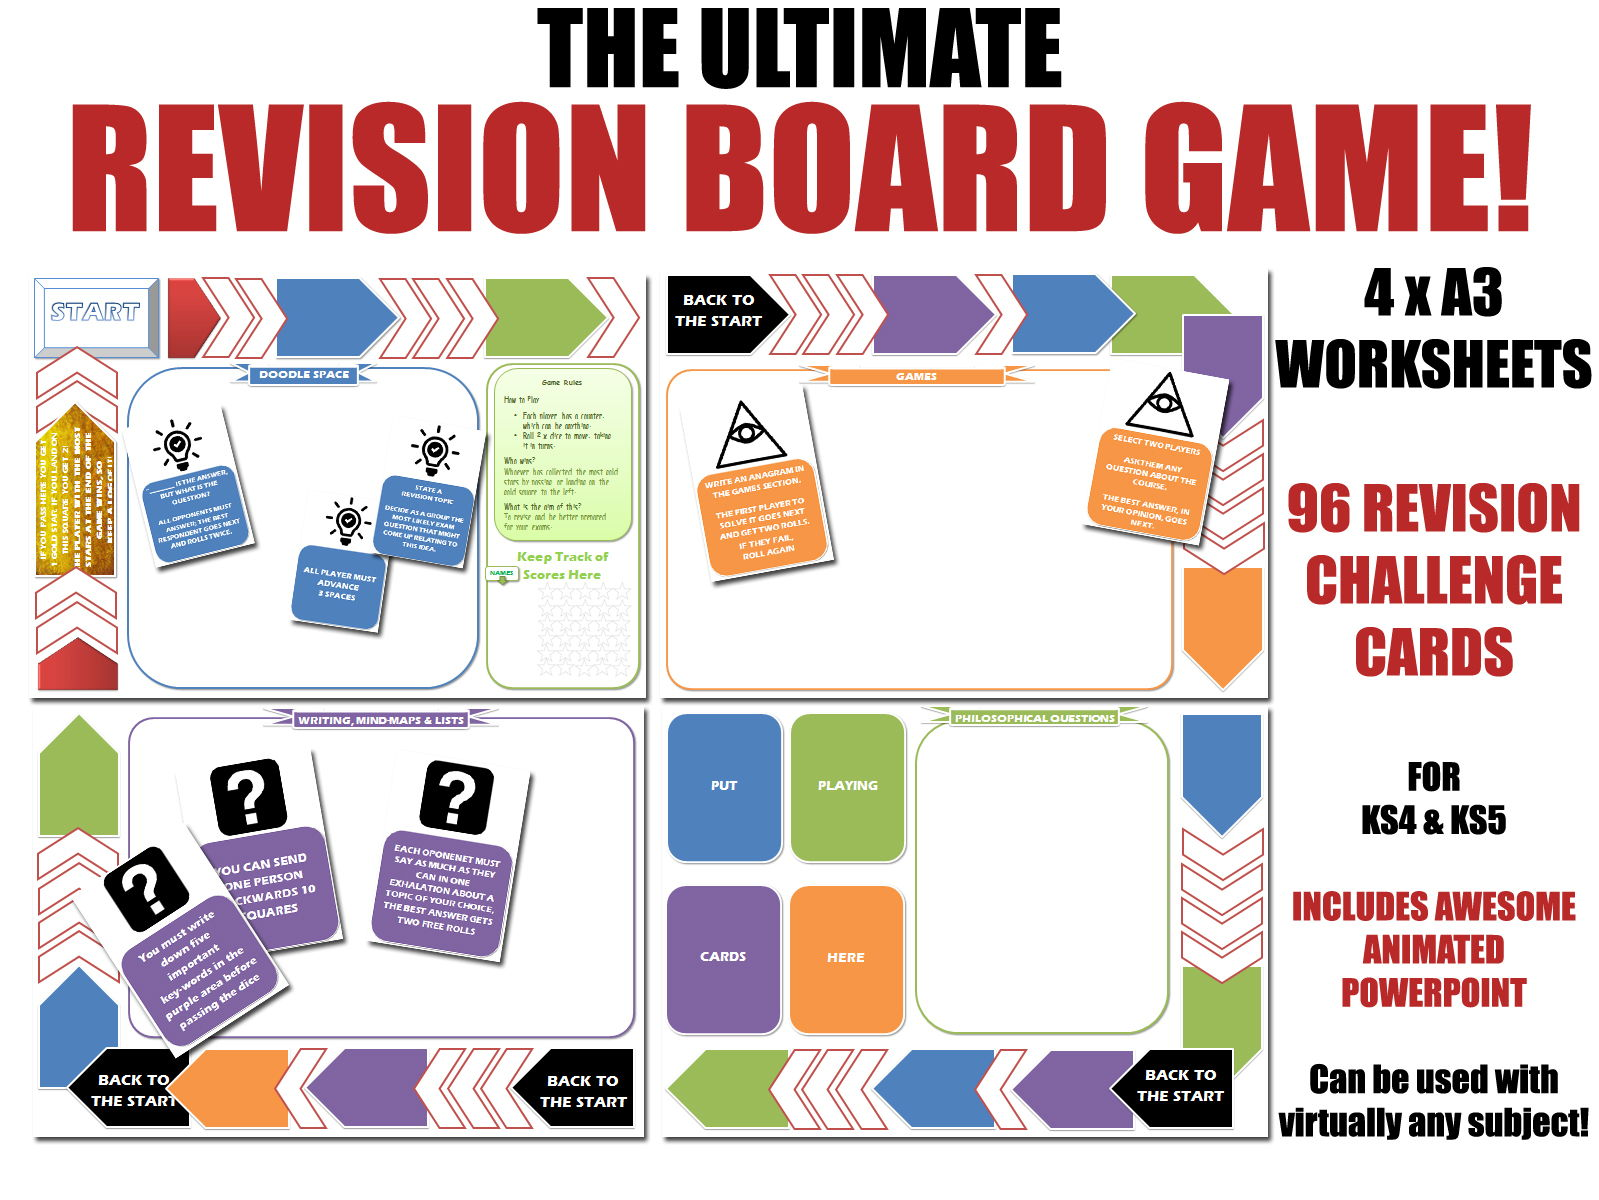 REVISION BOARD GAMES